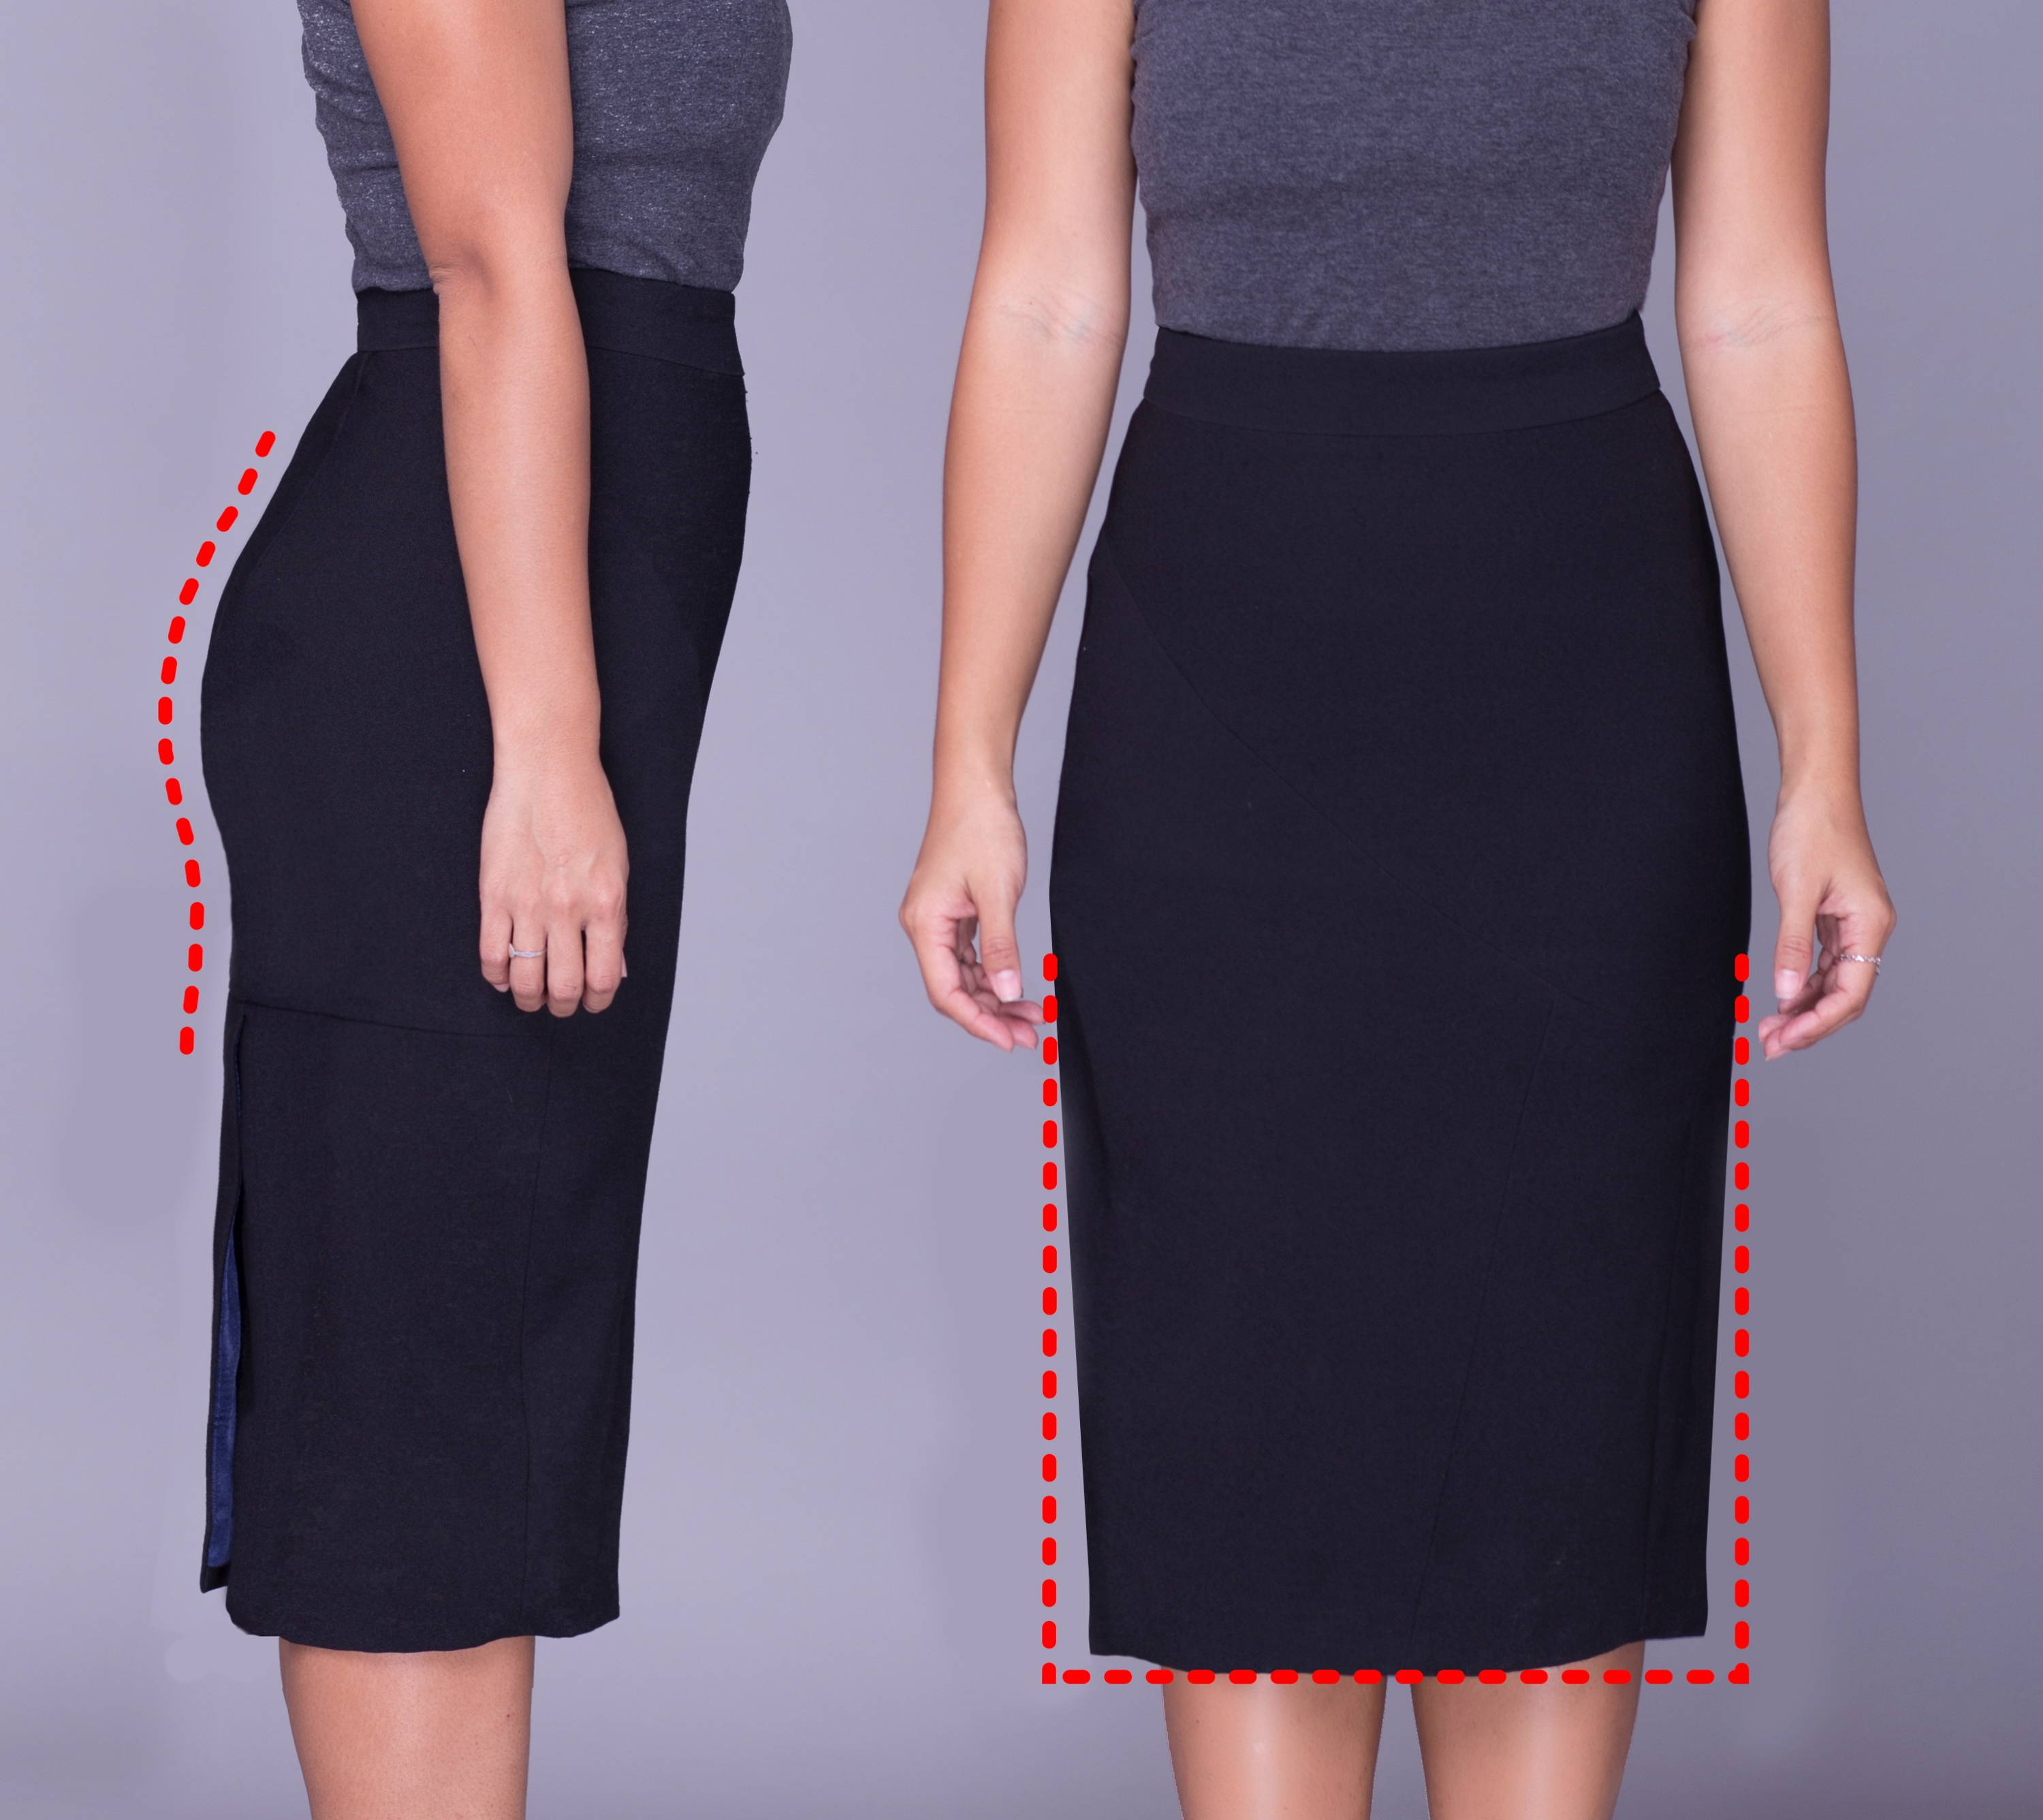 Rita Phil custom pencil skirts | Slim fit